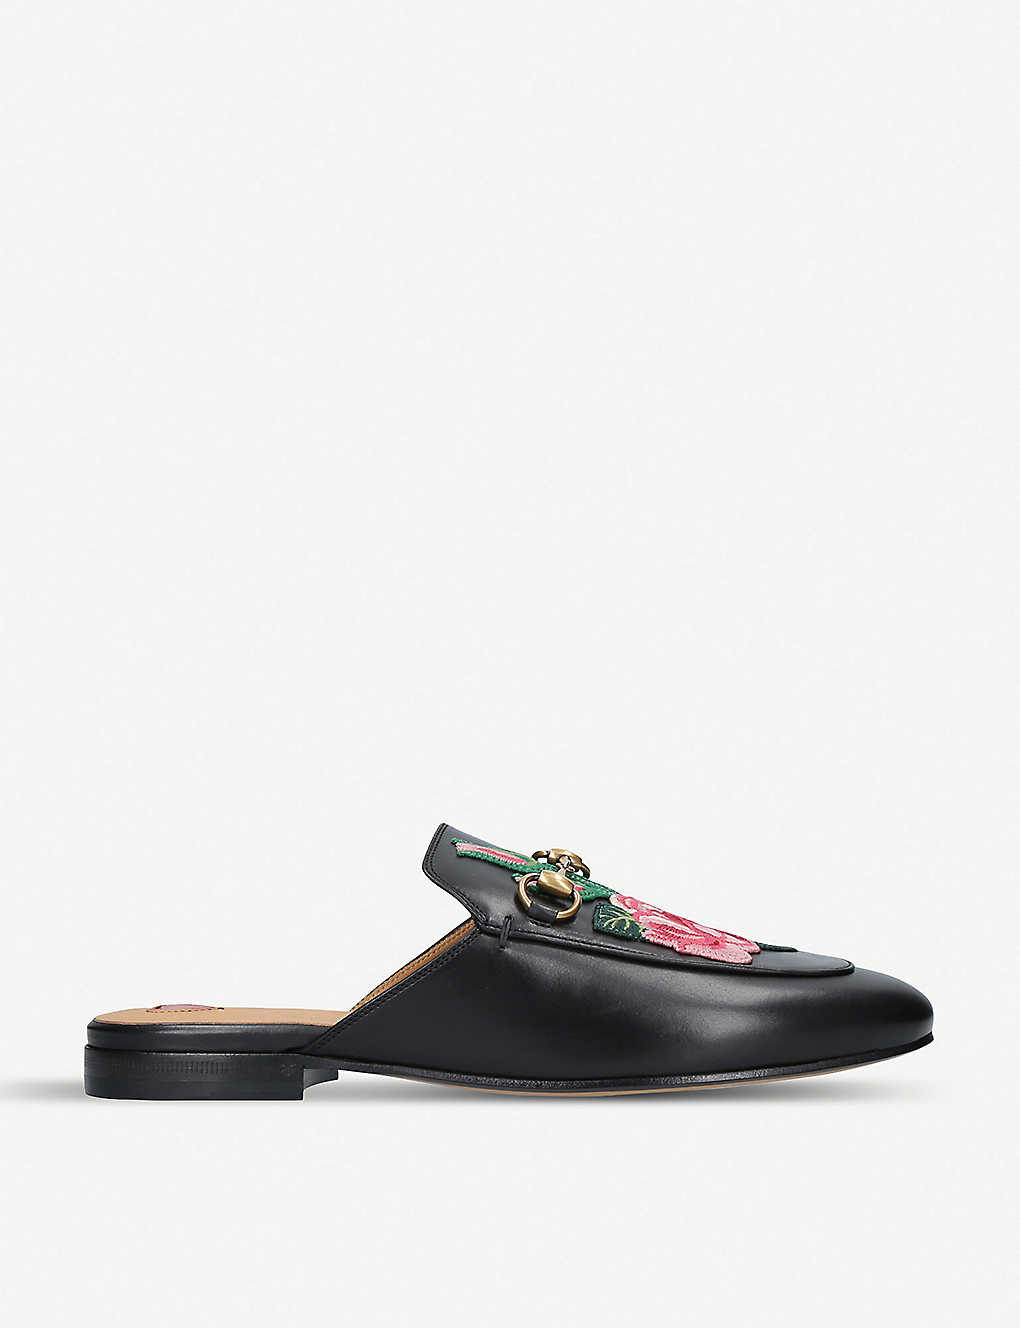 5c80779bb GUCCI - Princetown floral-embroidered leather slippers | Selfridges.com